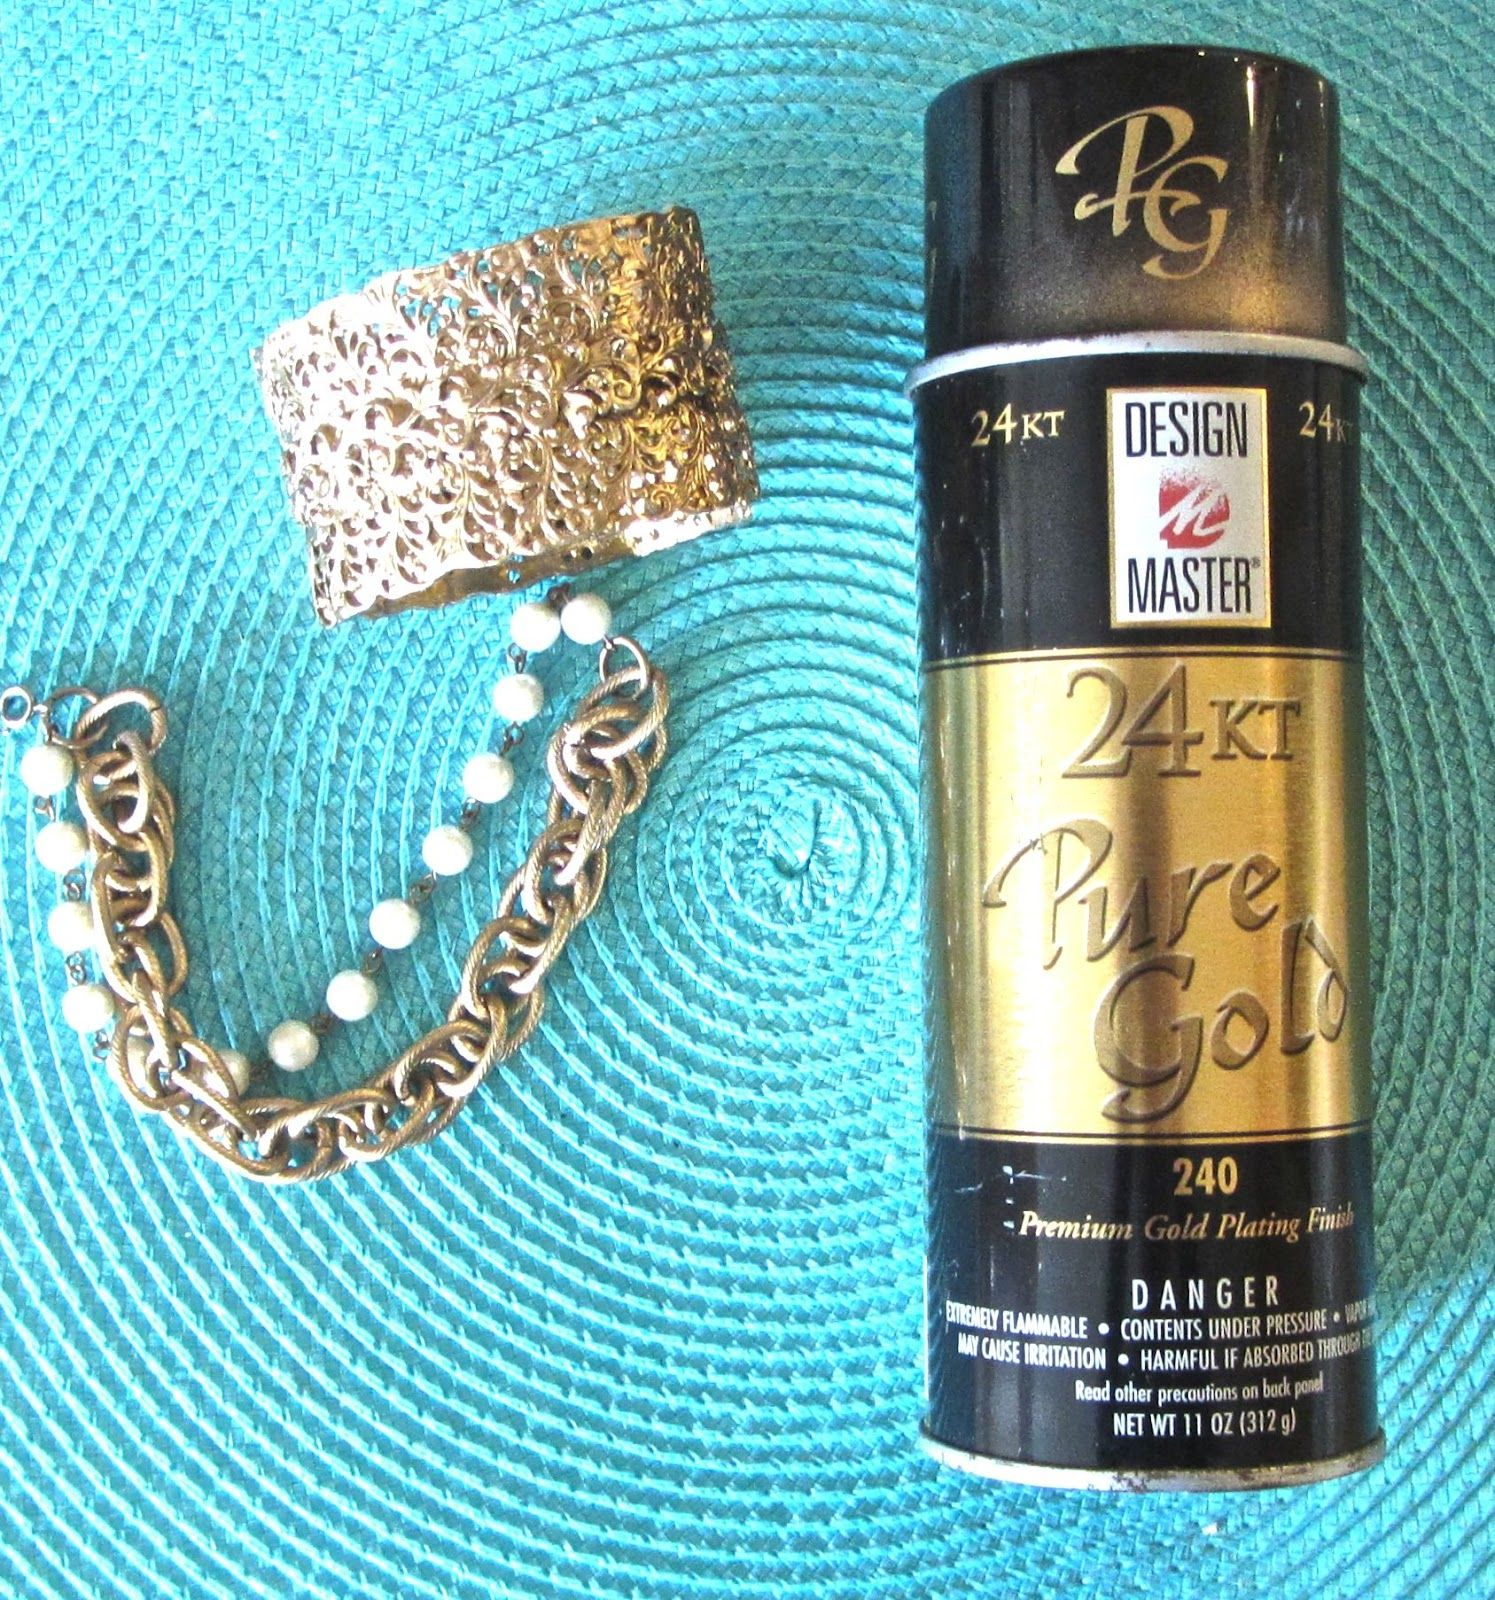 Town and Cottage Refurbish Gold Jewelry DIY Lovely Pinterest